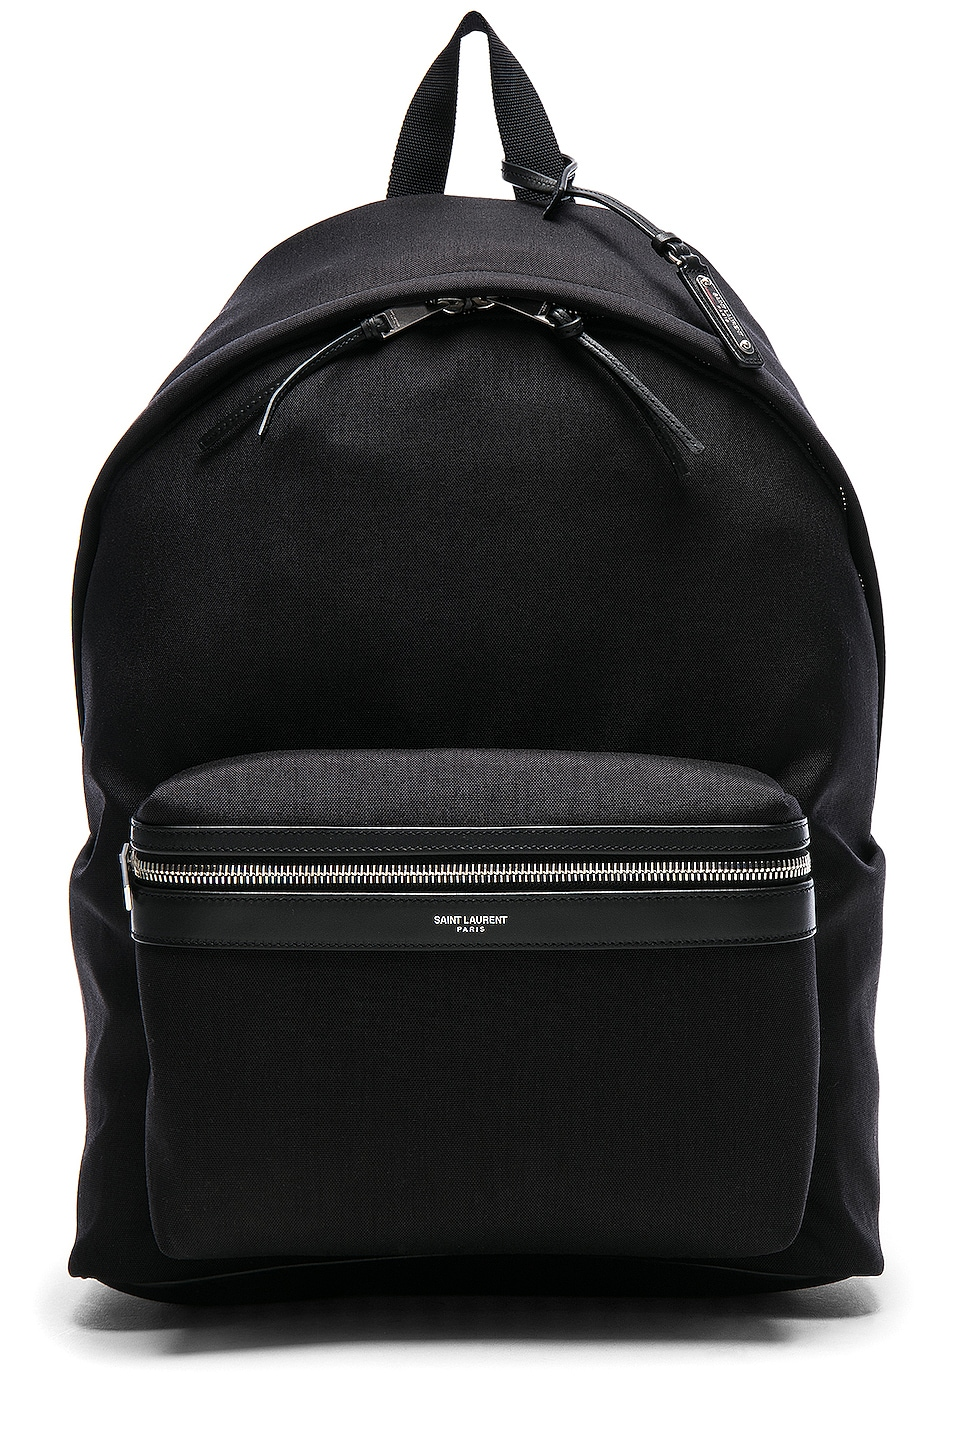 Image 1 of Saint Laurent Backpack in Black